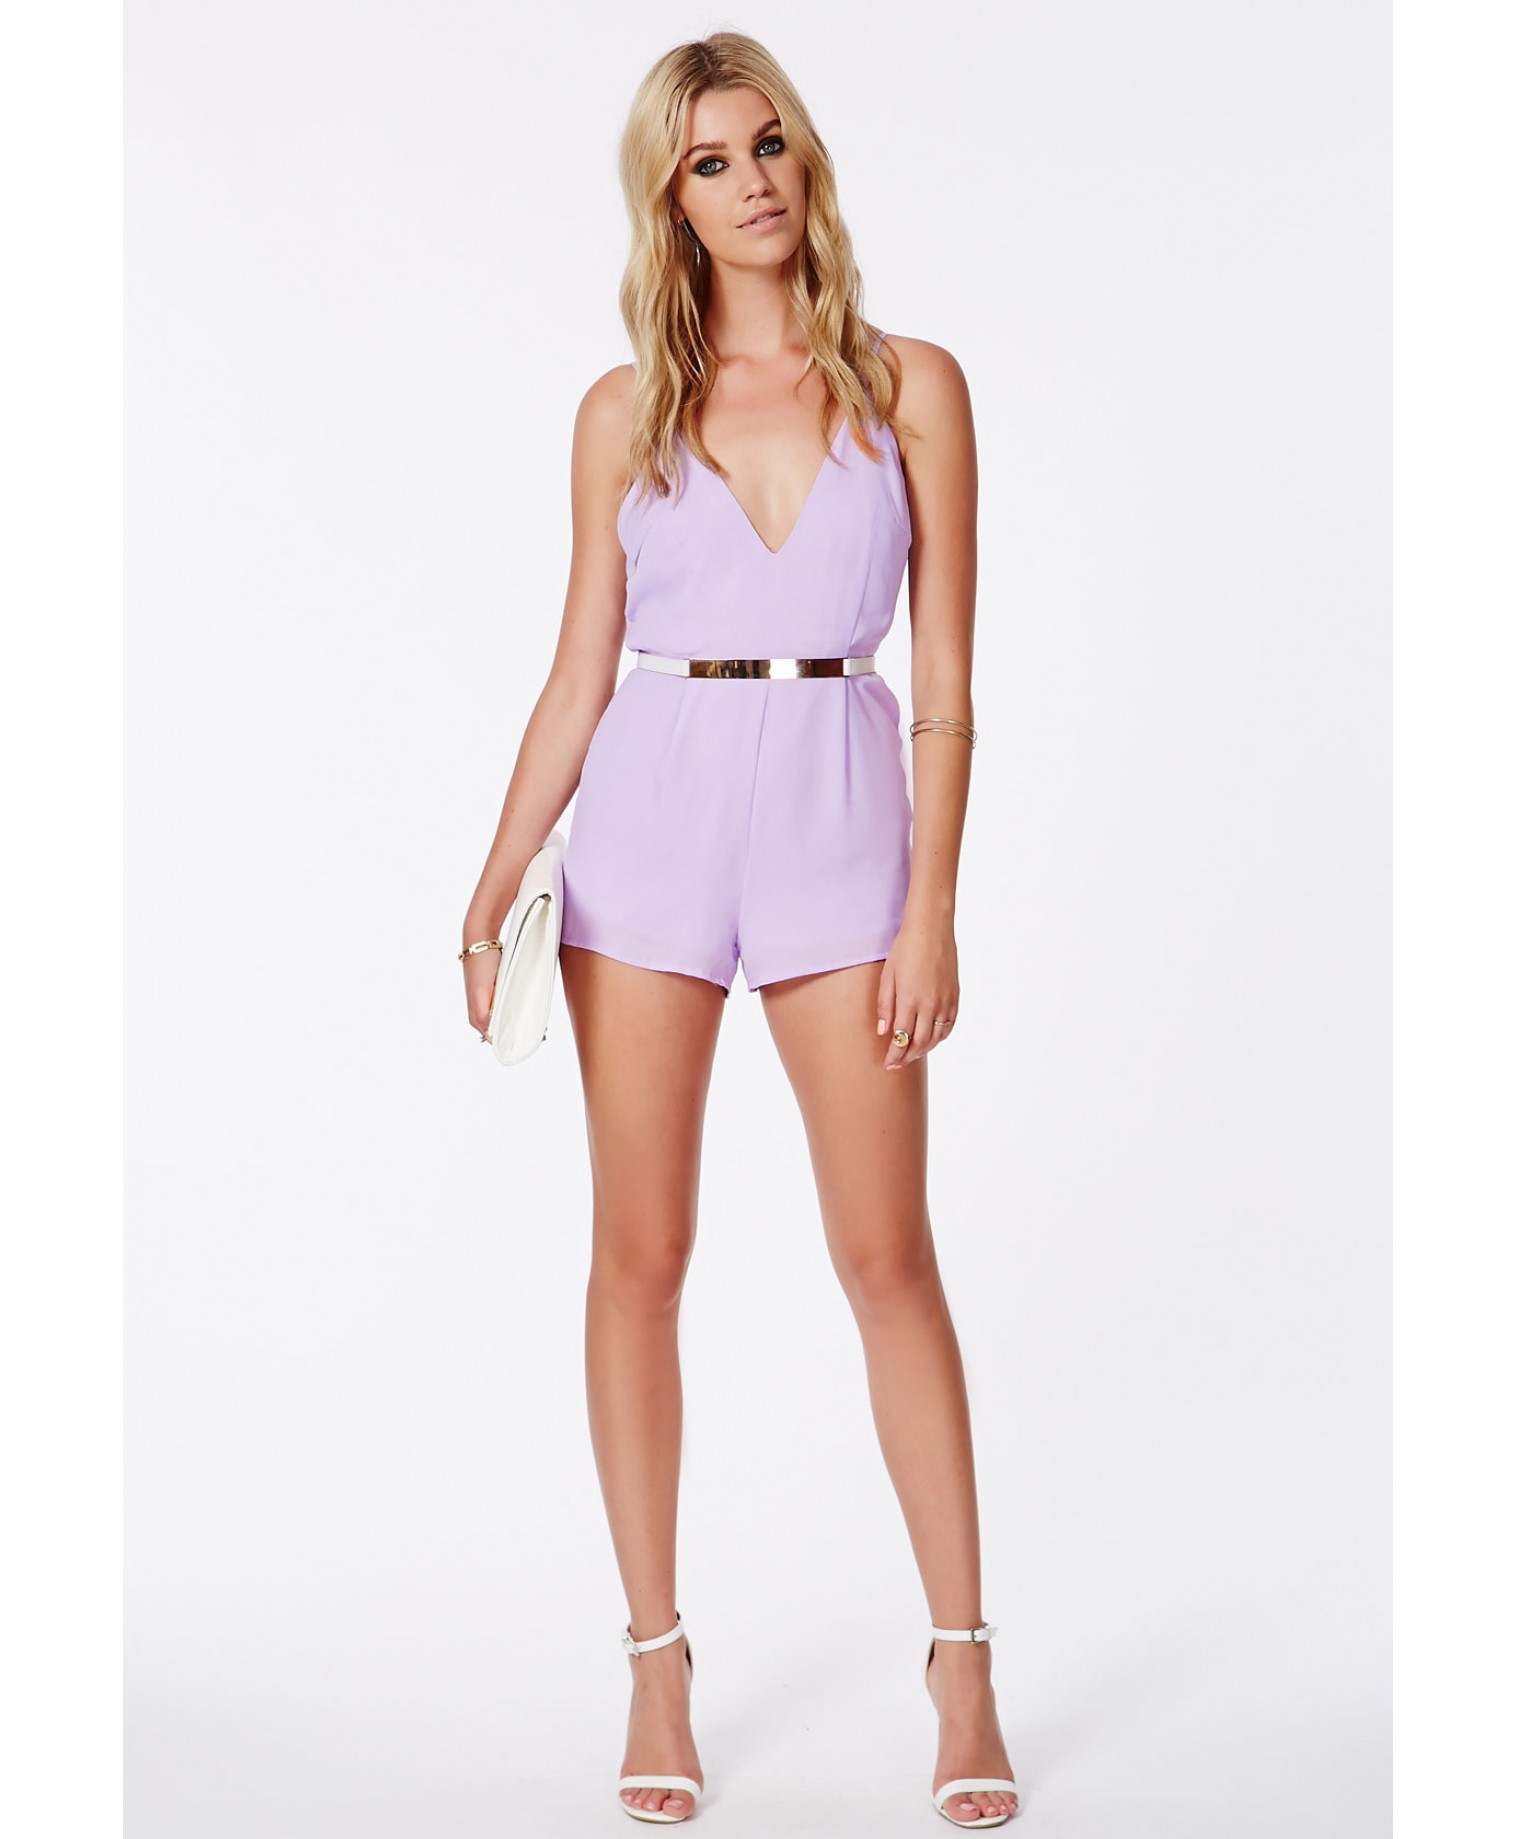 5057f7f89468 Missguided Lintley Chiffon Strappy Romper Lilac in Purple - Lyst